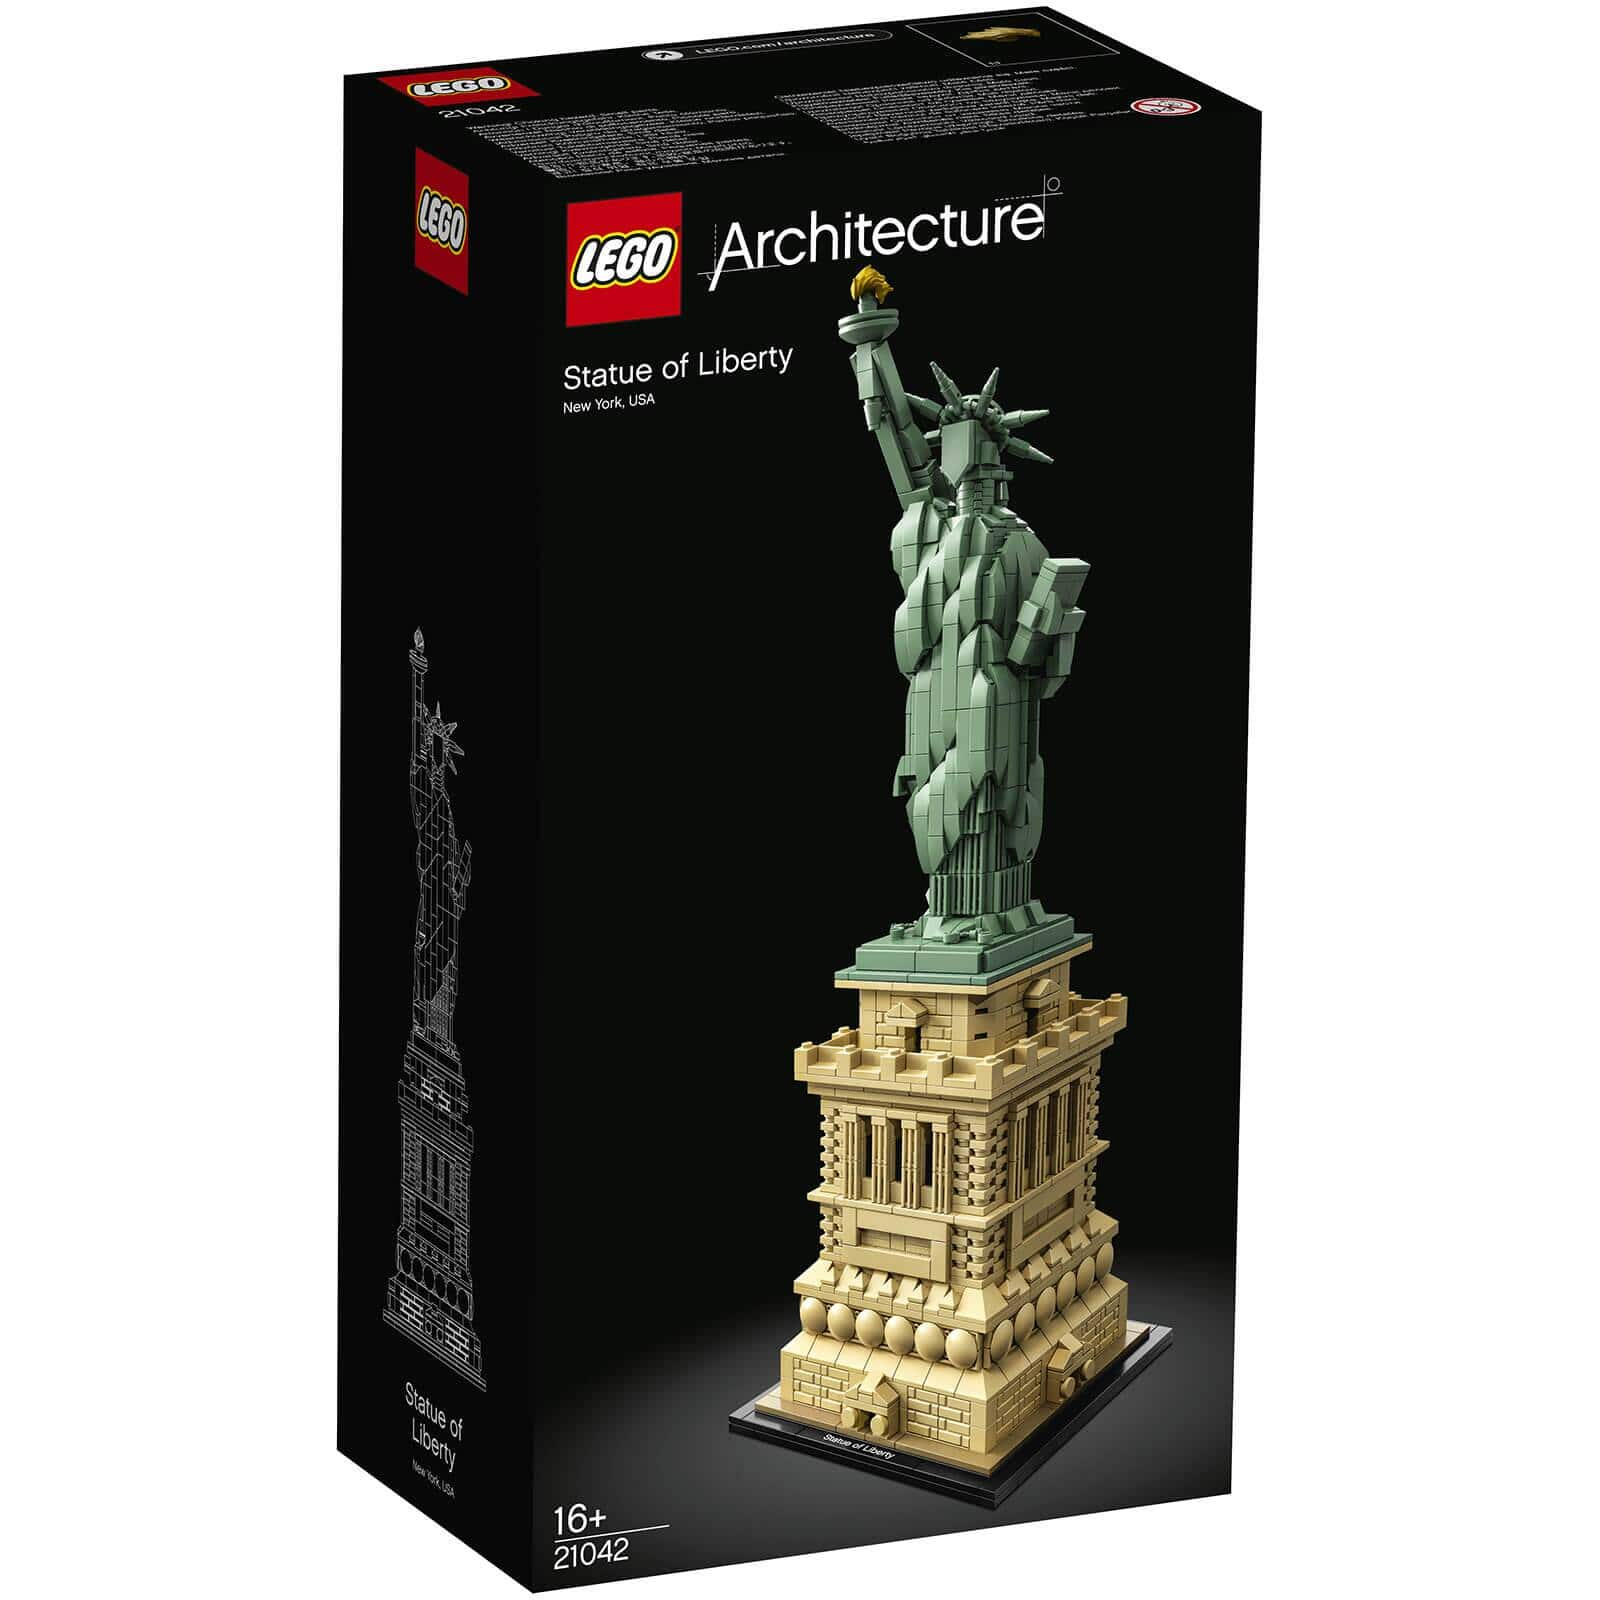 iwoot: LEGO Architecture: Statue of Liberty Building Set (21042) $89.99 + Free Shipping